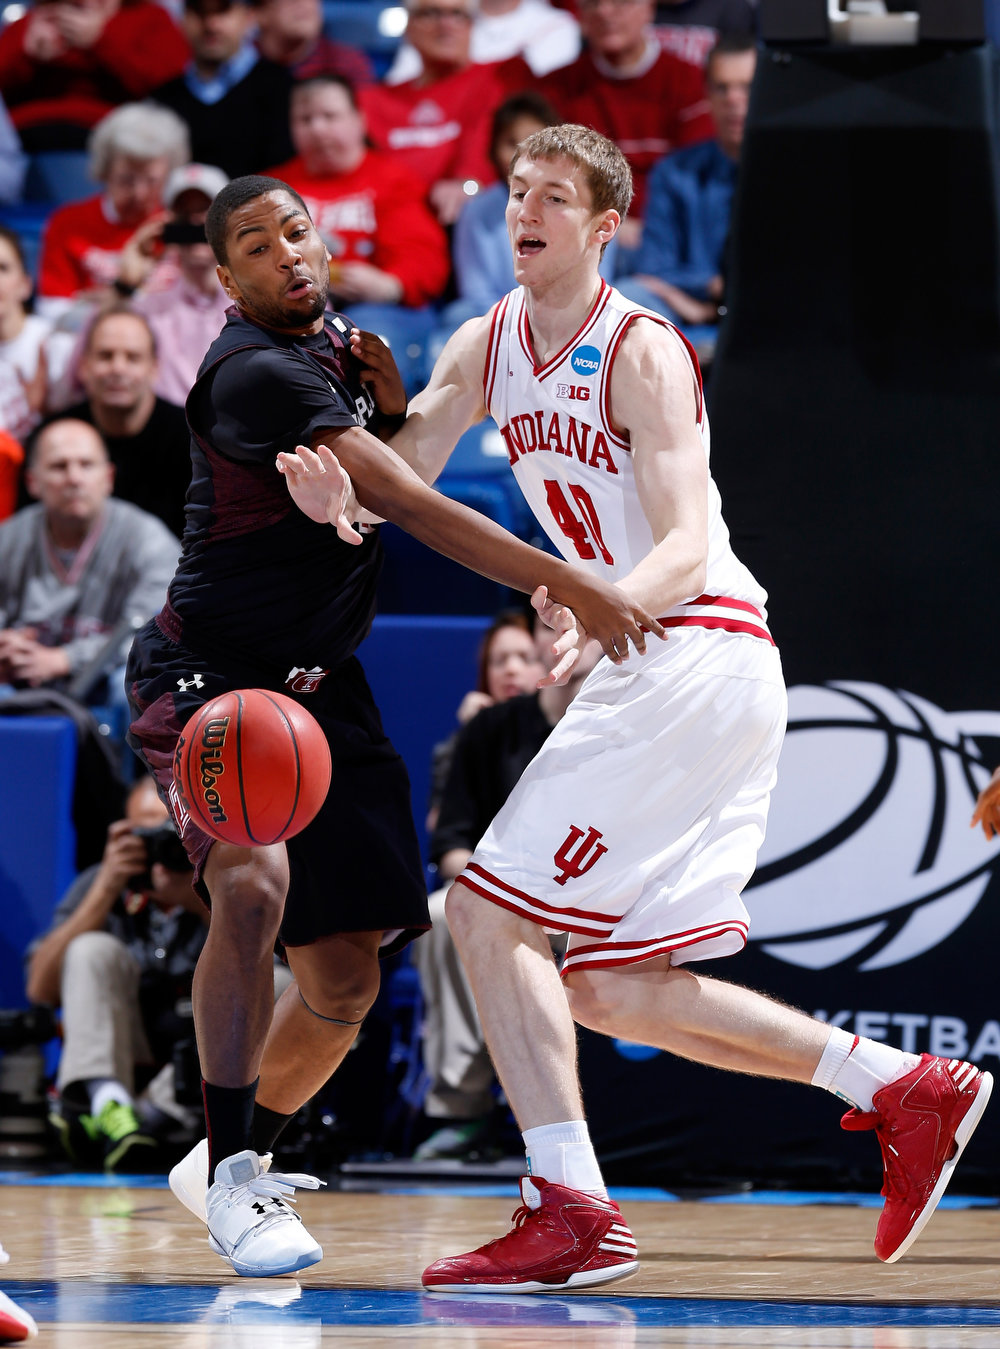 . Cody Zeller #40 of the Indiana Hoosiers and Khalif Wyatt #1 of the Temple Owls reach for a loose ball in the first half during the third round of the 2013 NCAA Men\'s Basketball Tournament at UD Arena on March 24, 2013 in Dayton, Ohio.  (Photo by Joe Robbins/Getty Images)